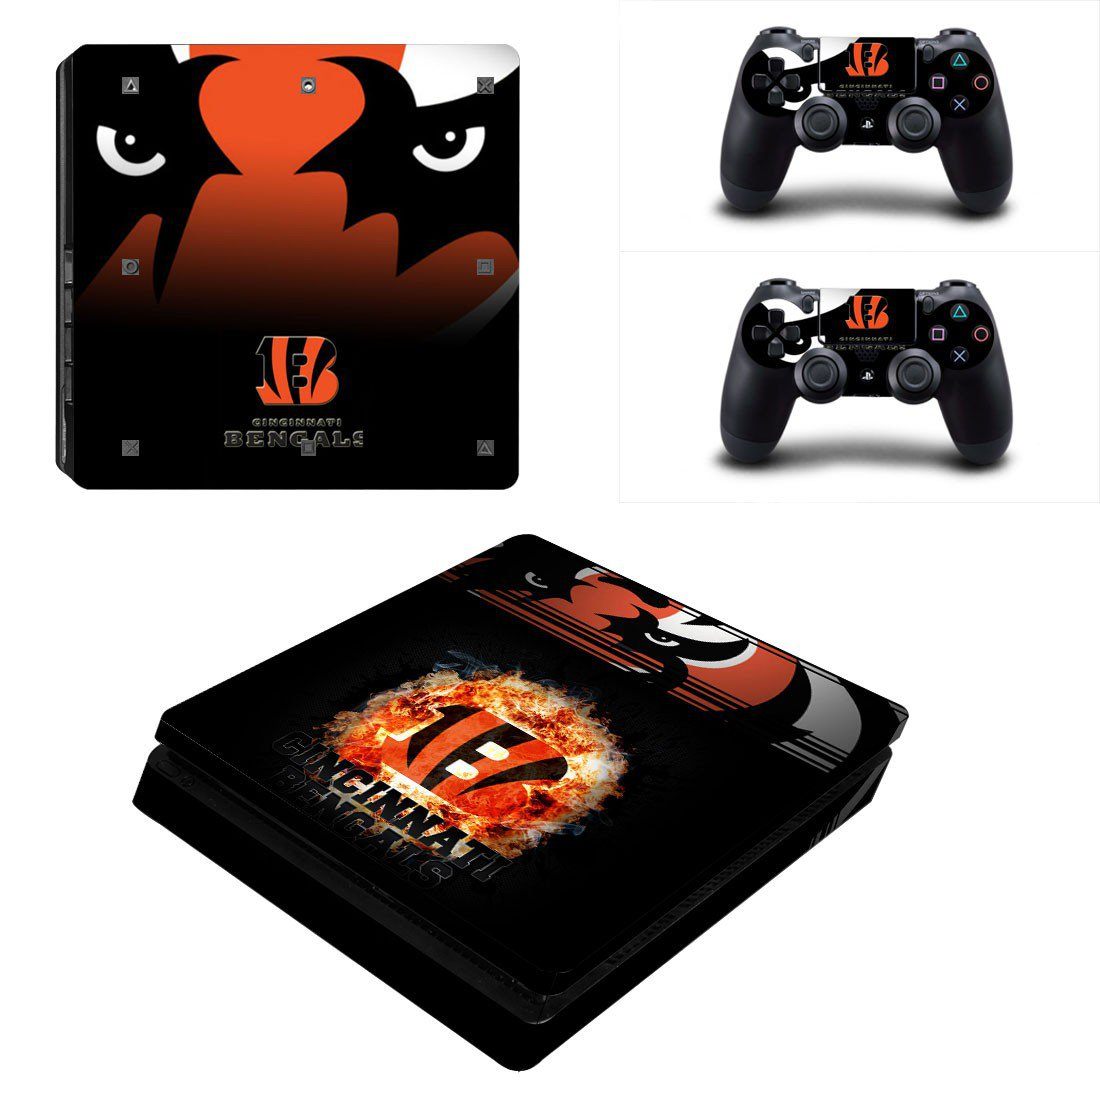 Cincinnati Bengals Play Station 4 slim skin decal for console and 2 controllers